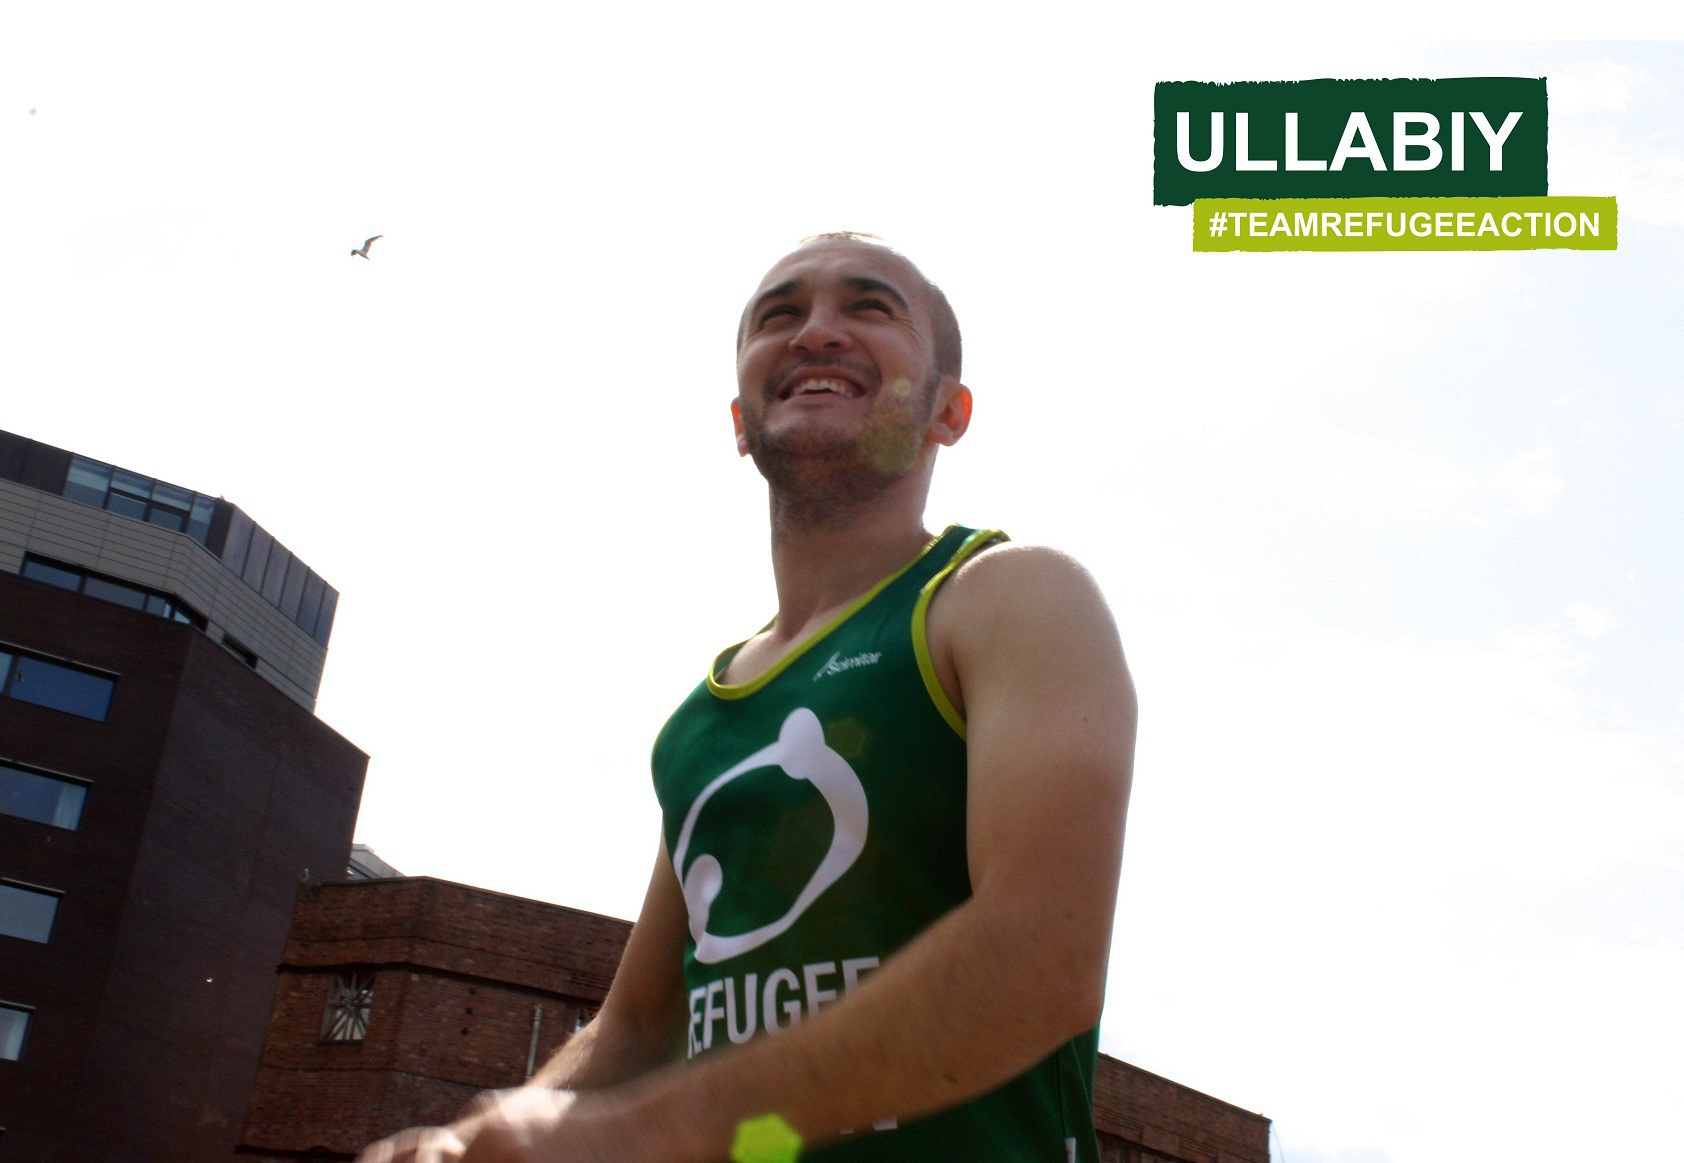 Ullabiy is running for Refugee Action in the 2014 Bristol Half Marathon Photo Refugee Action